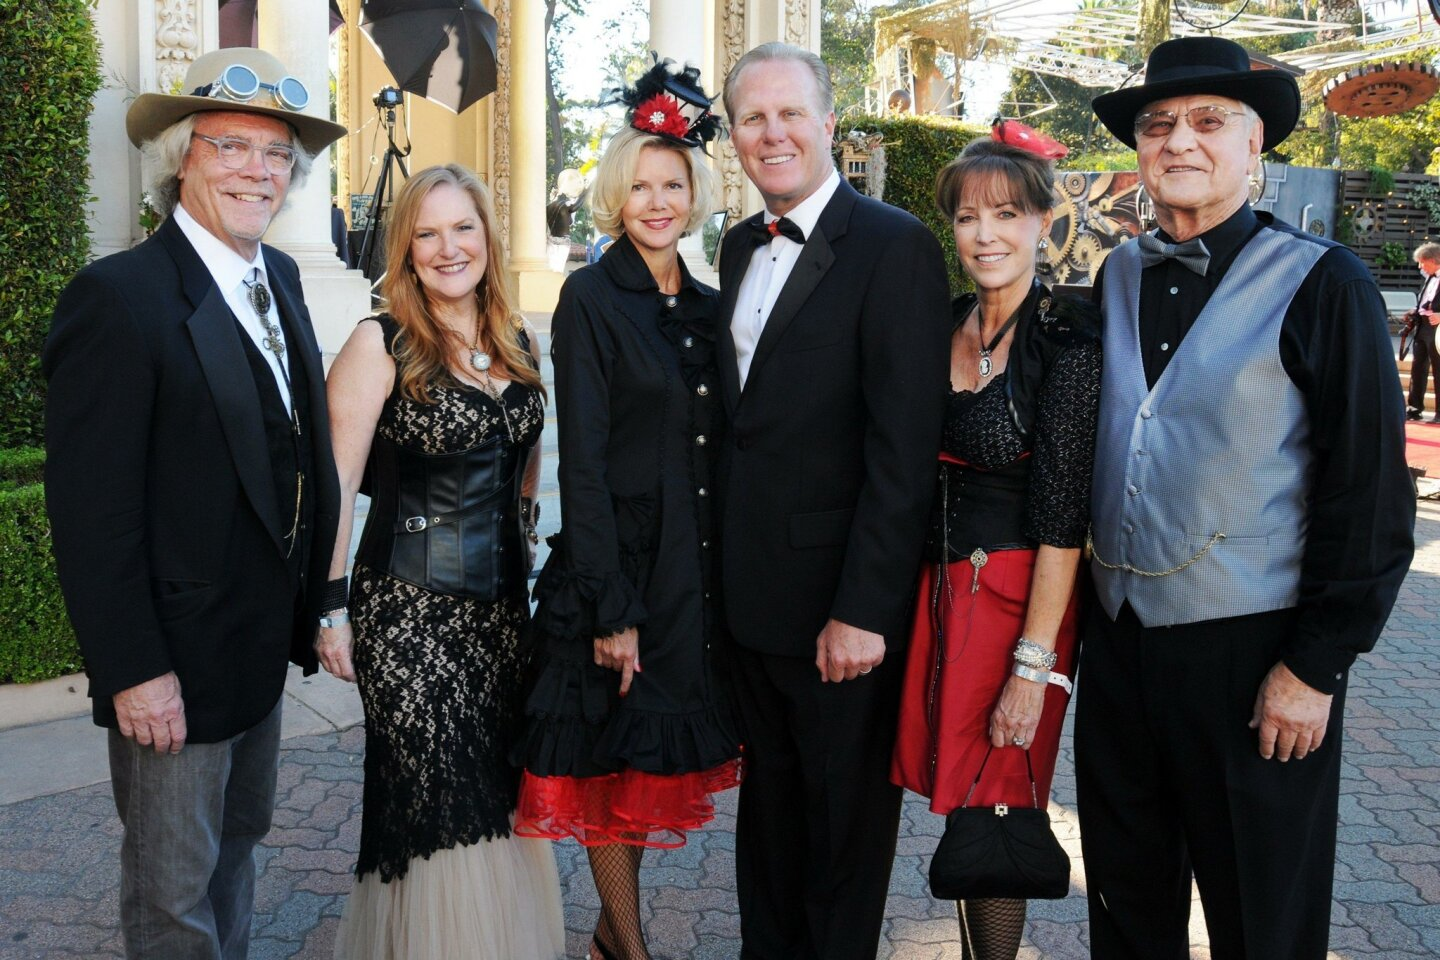 Bob Salt and Patti Judd, Katherine and Mayor Kevin Faulconer, Ellen and Dr. T.K. Bryson